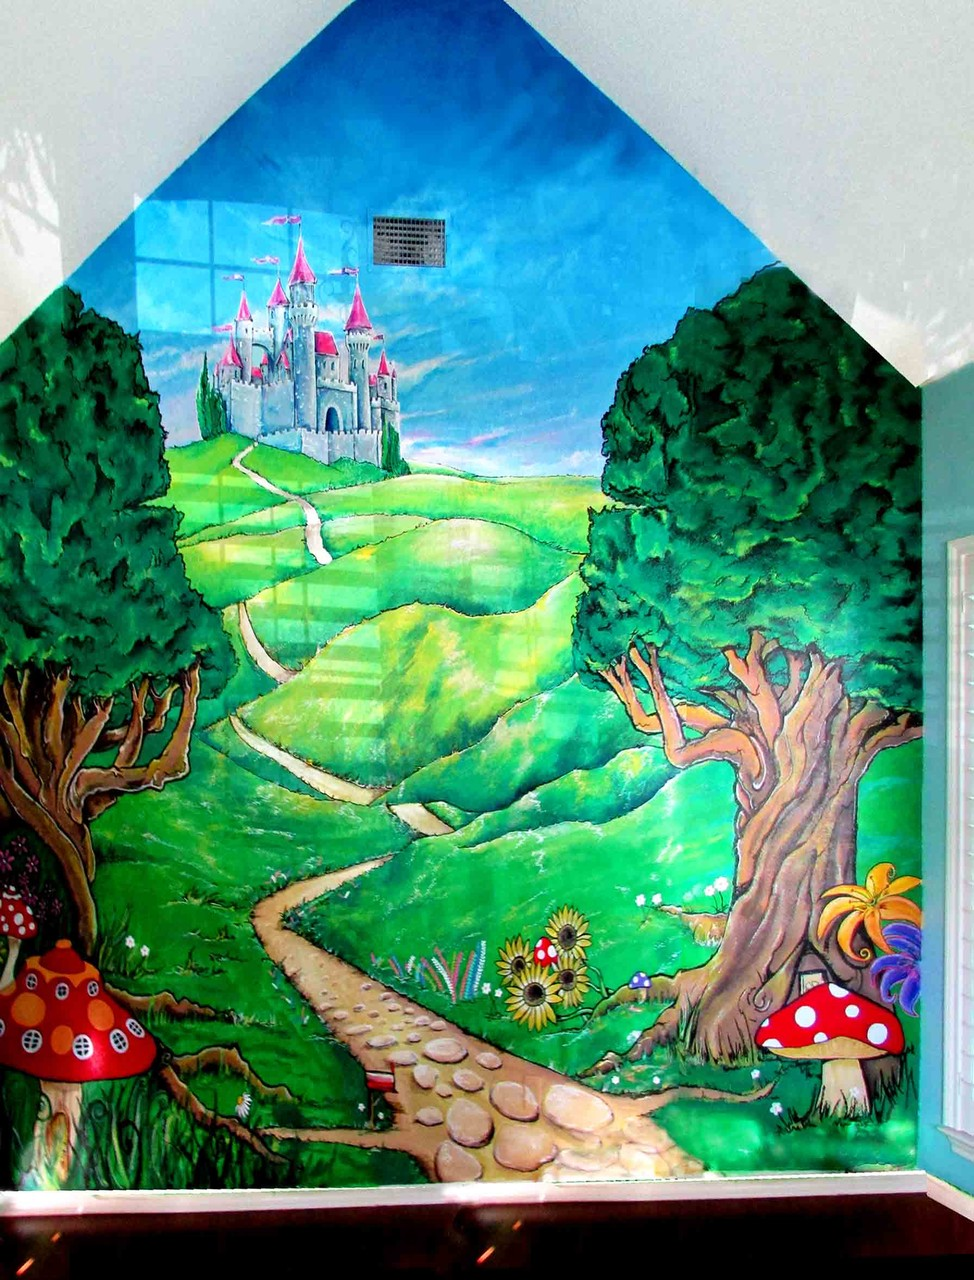 Fairy Tale Whimsical Castle Mural 15' x 12 Fort Worth Tx